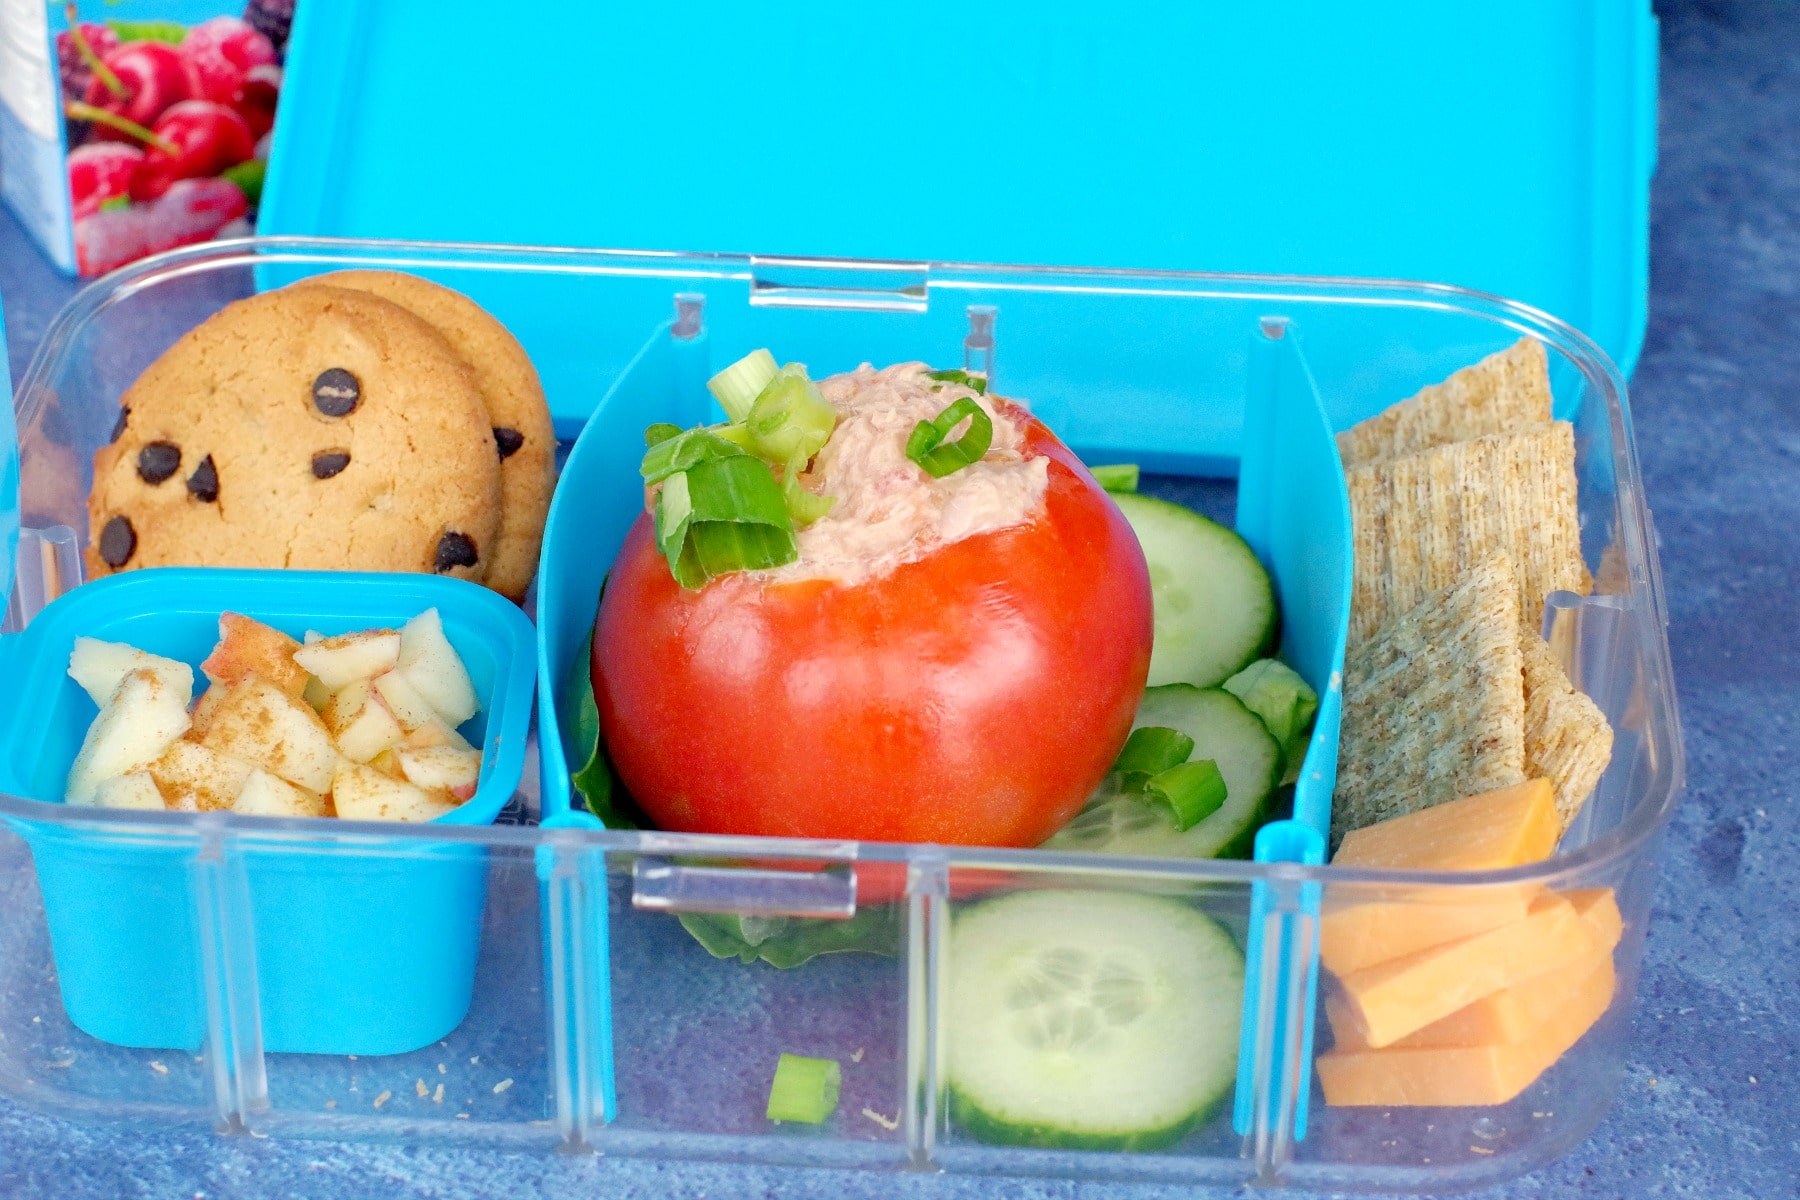 stuffed tomatoes in lunch box with cracker, cheese, cookies and apple yogurt